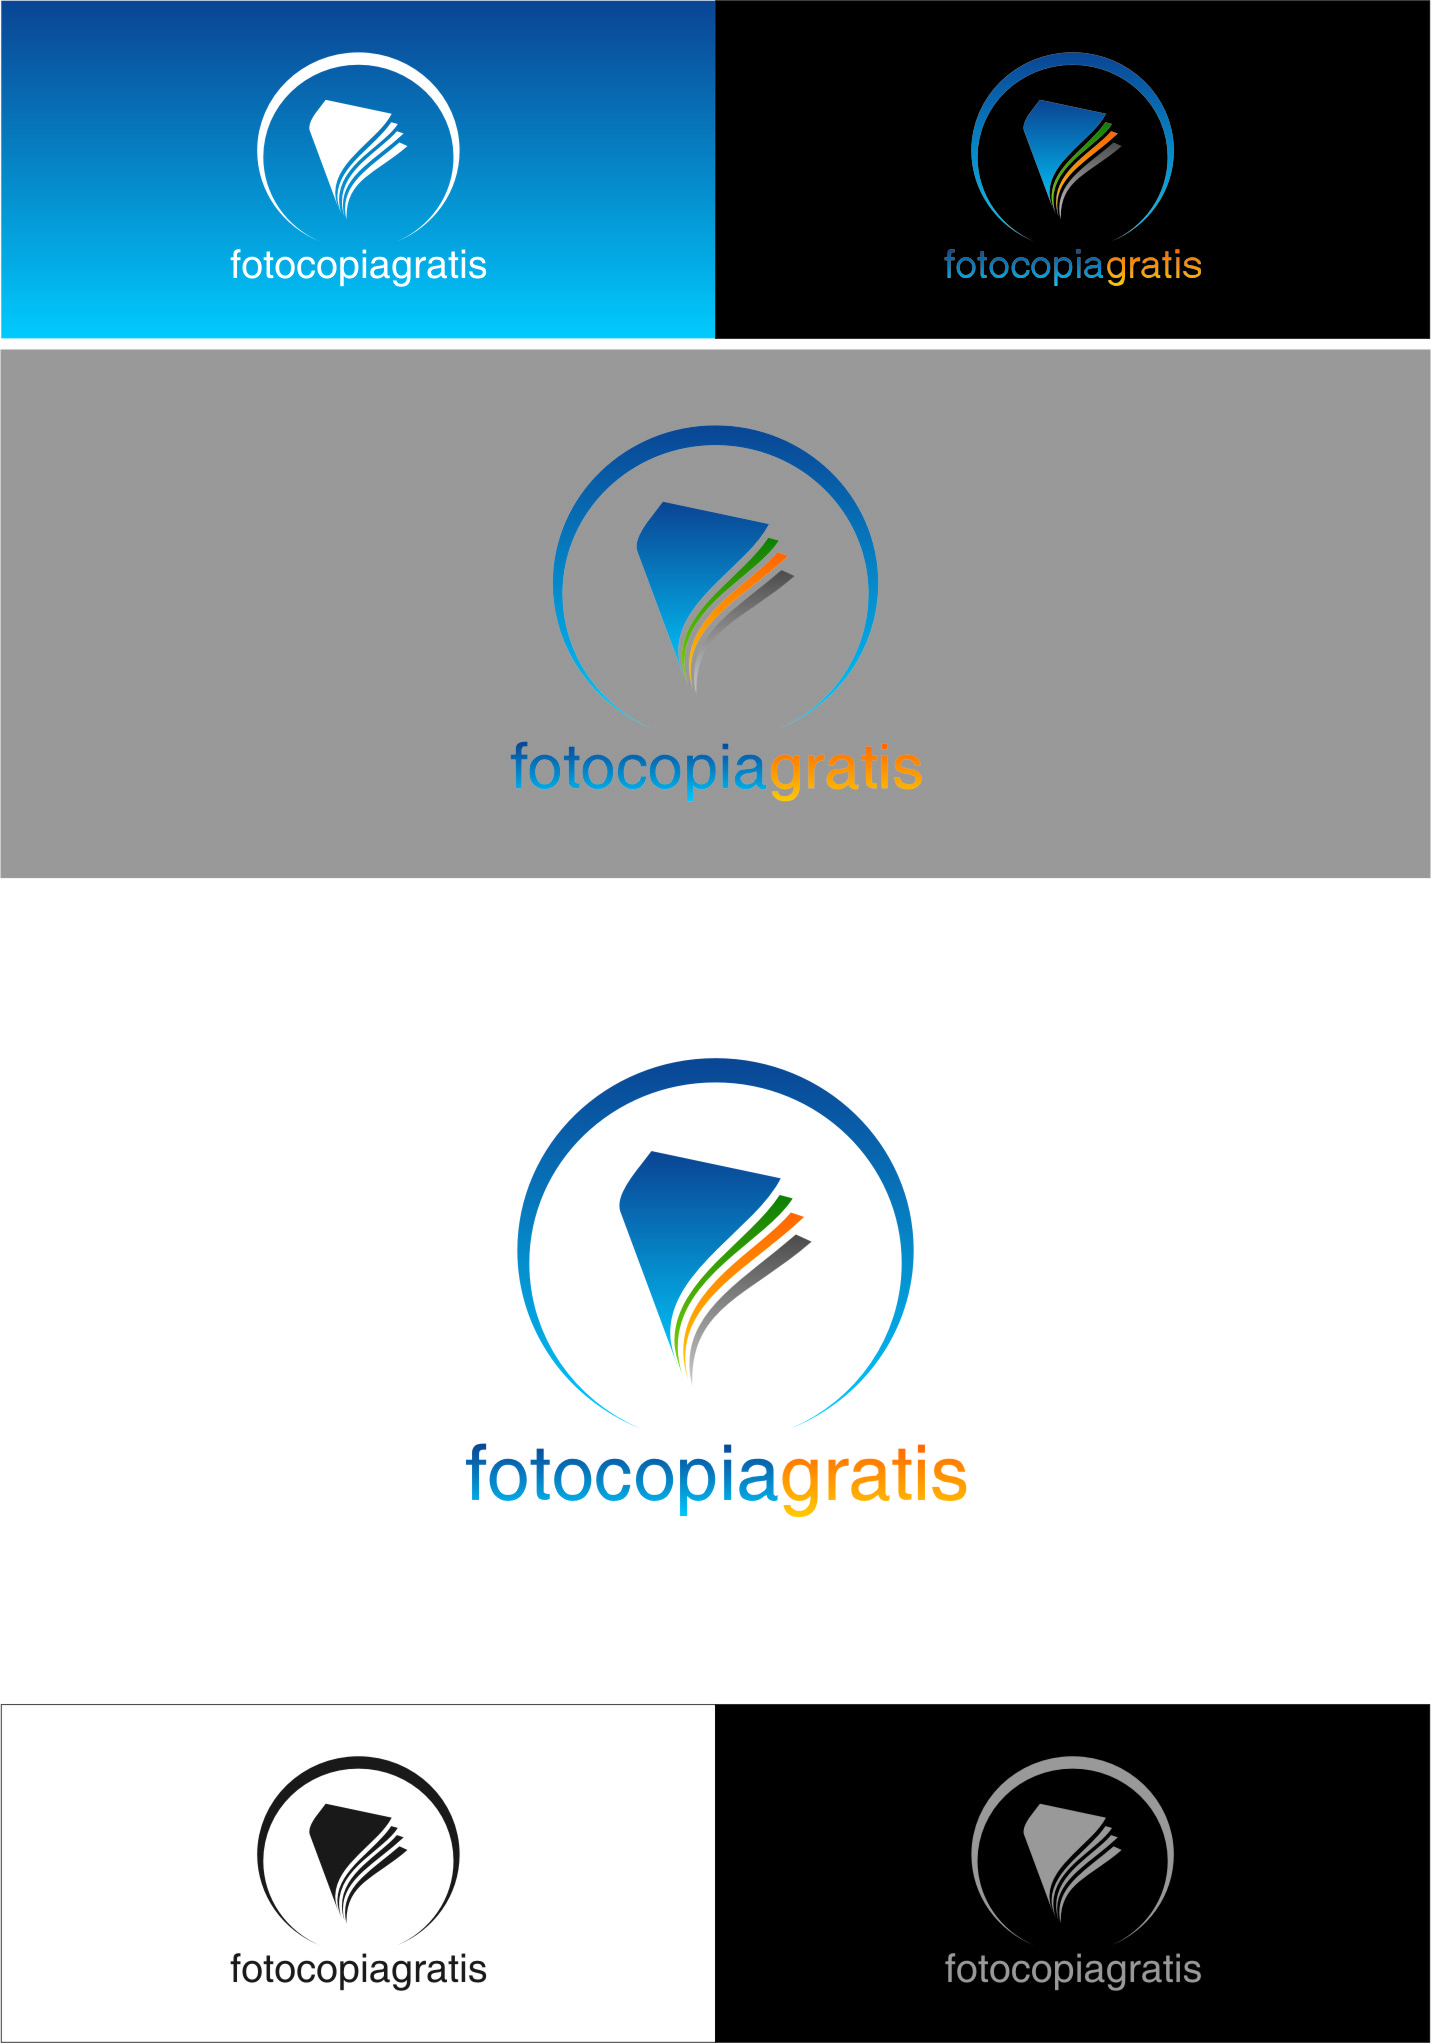 Logo Design by Ngepet_art - Entry No. 80 in the Logo Design Contest Inspiring Logo Design for Fotocopiagratis.